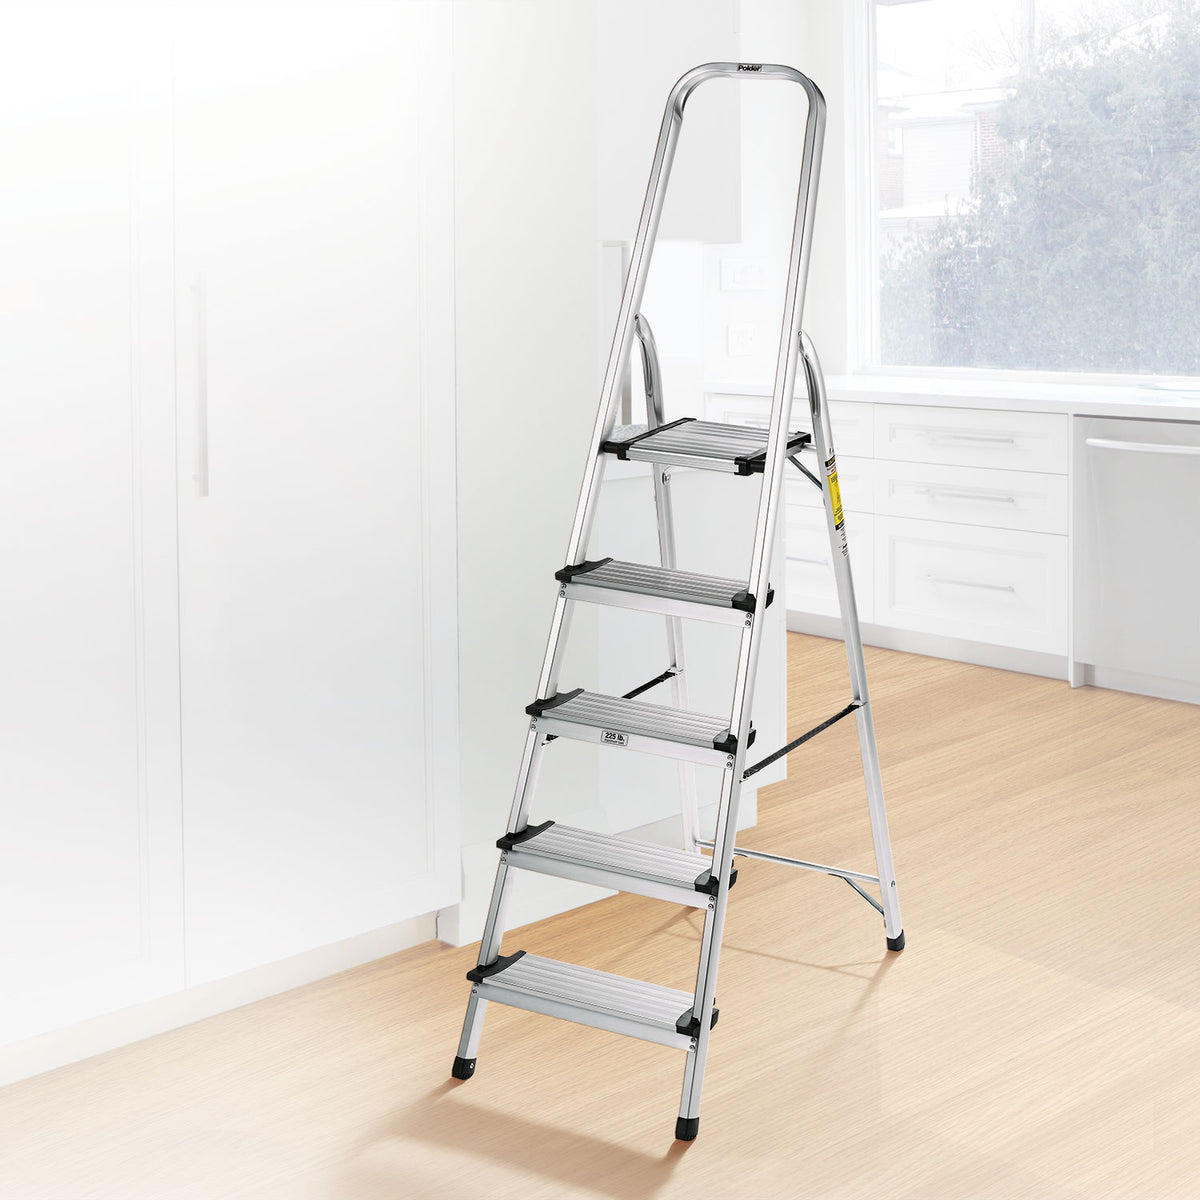 5 Step Ultralight Step Stool Polder Products Life